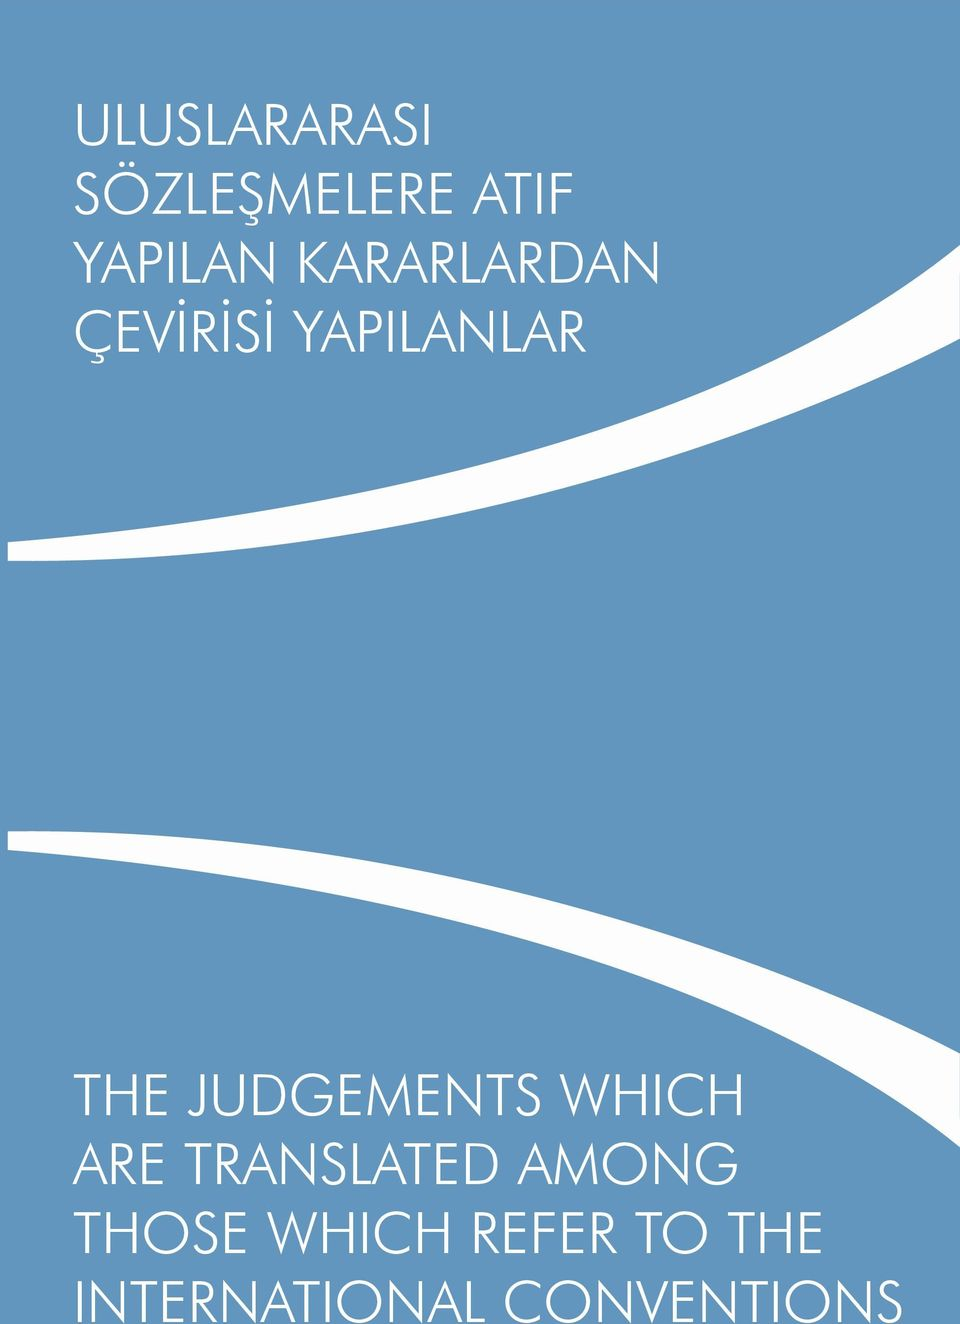 JUDGEMENTS WHICH ARE TRANSLATED AMONG